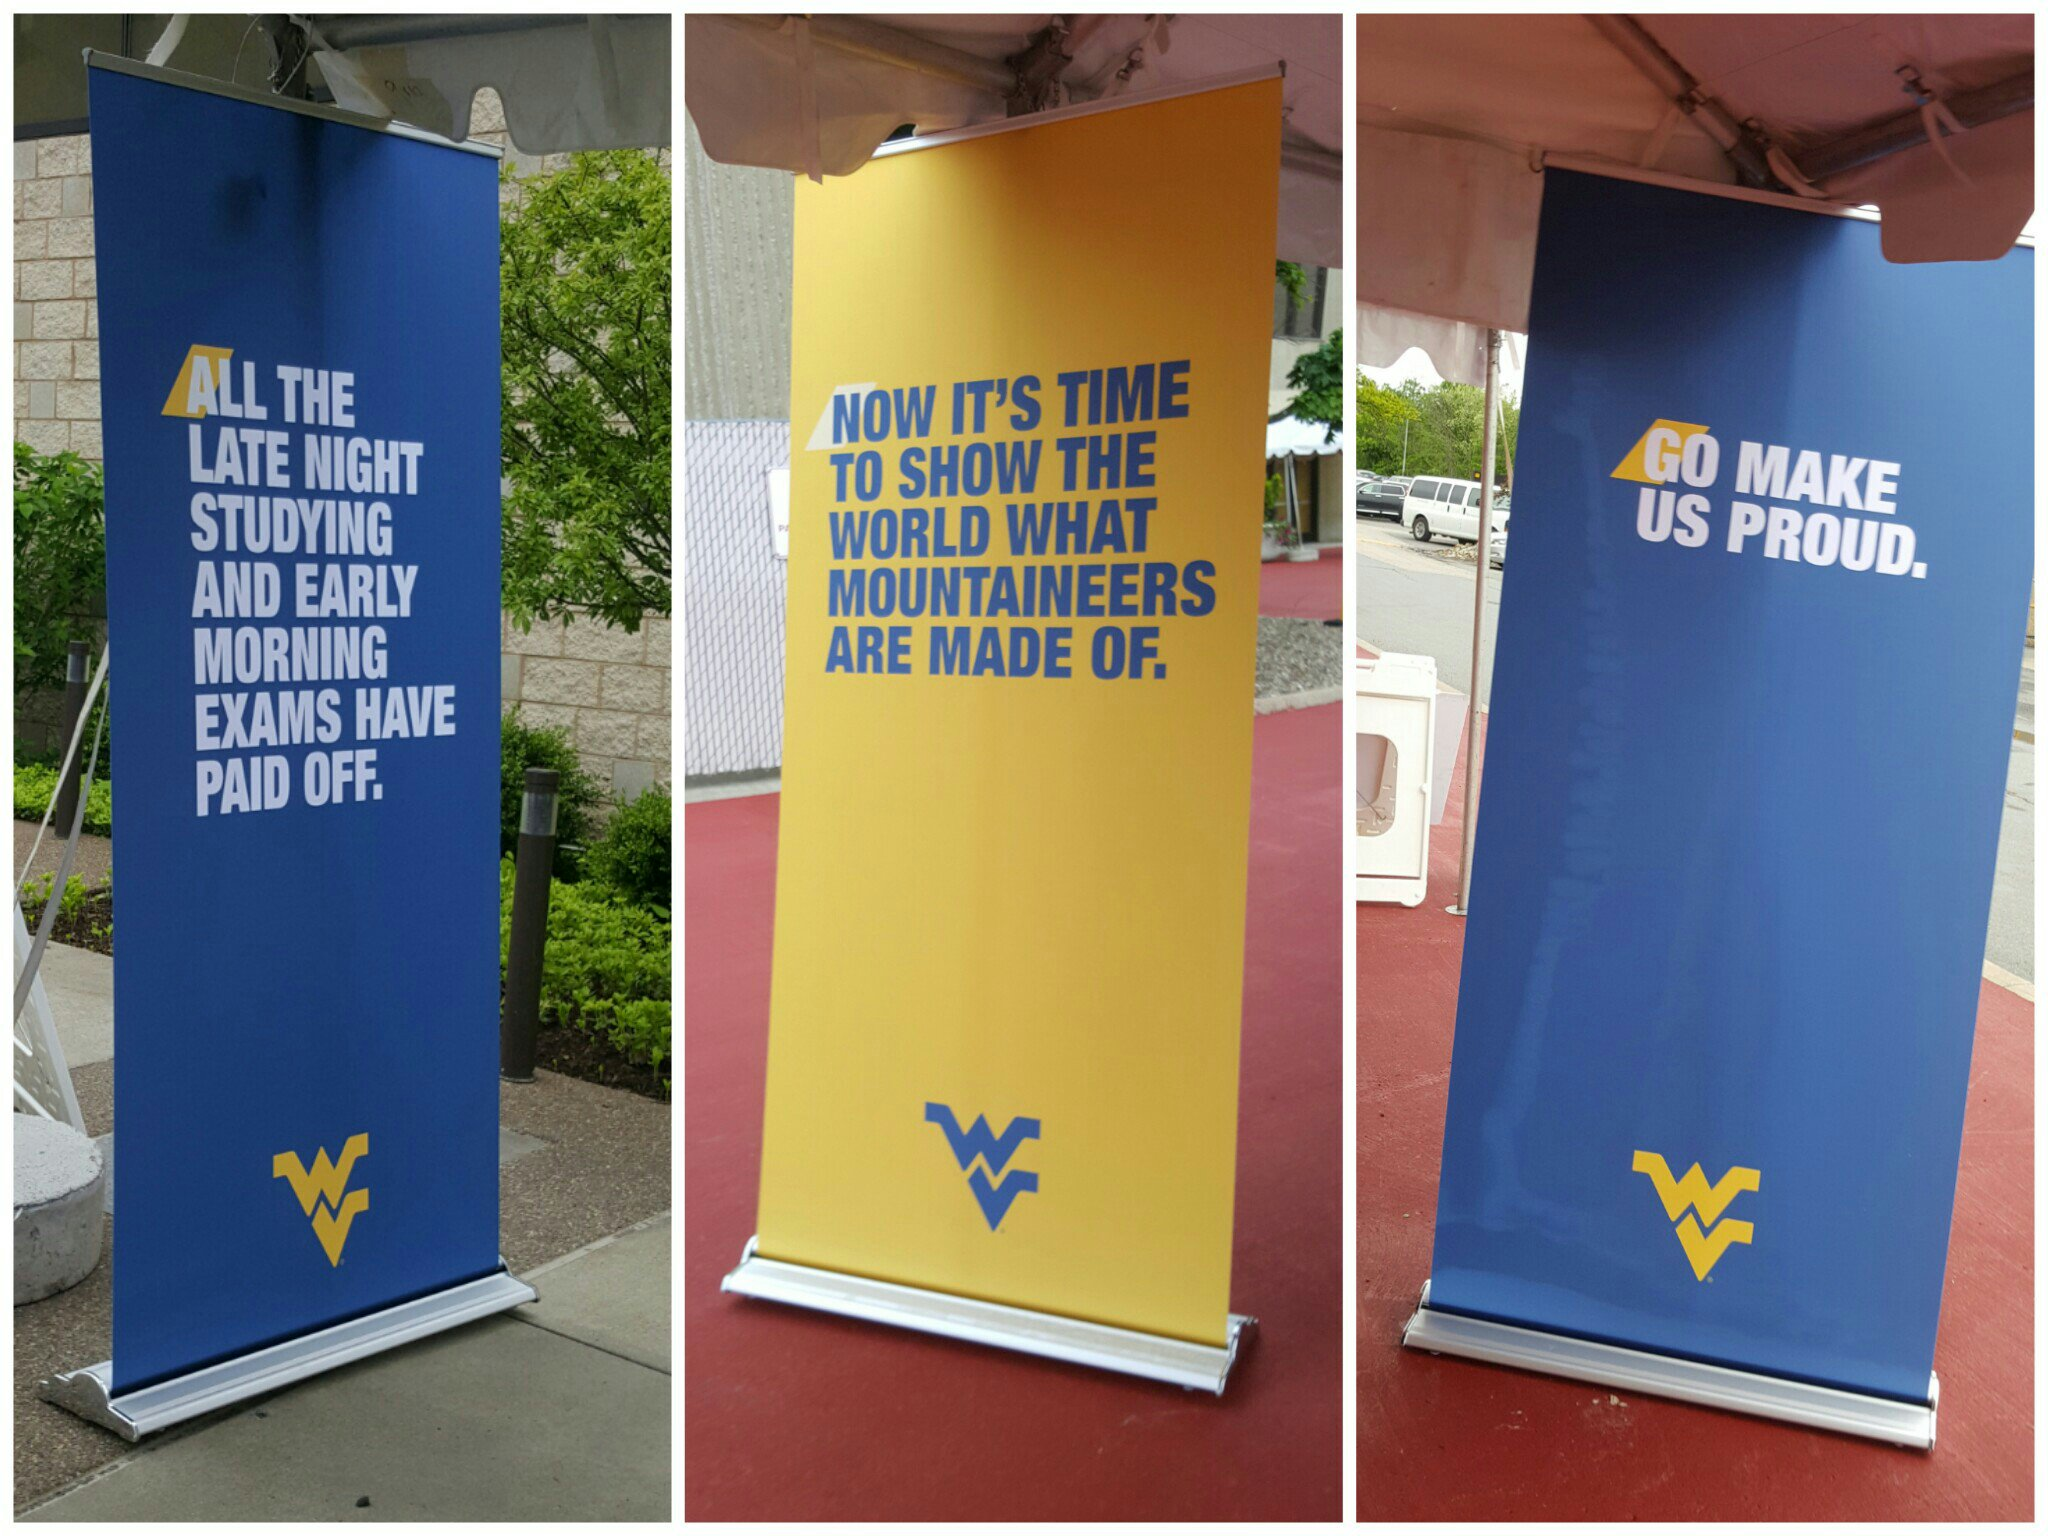 Thanks for hyping us for the celebration as we walked to the ceremony, @wvuimc #WVUgrad https://t.co/WWti8y2loD